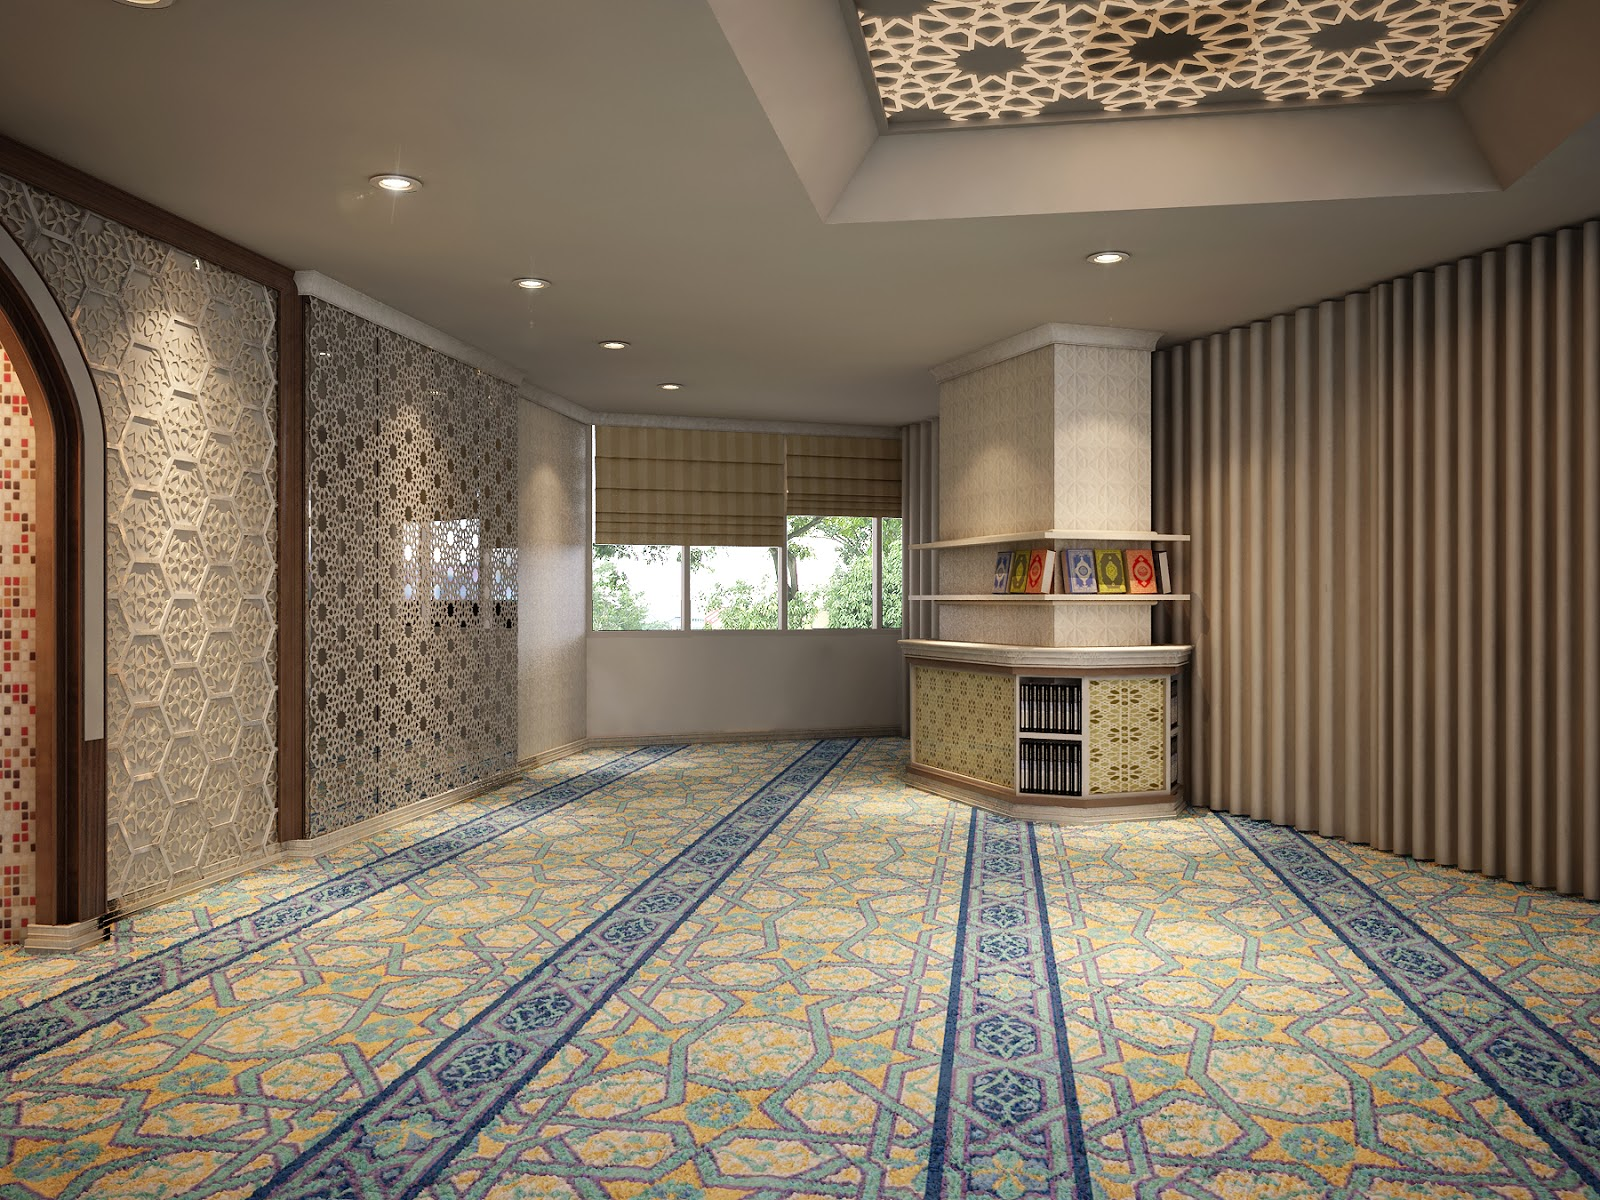 Centara design interior design works for Designs of the interior